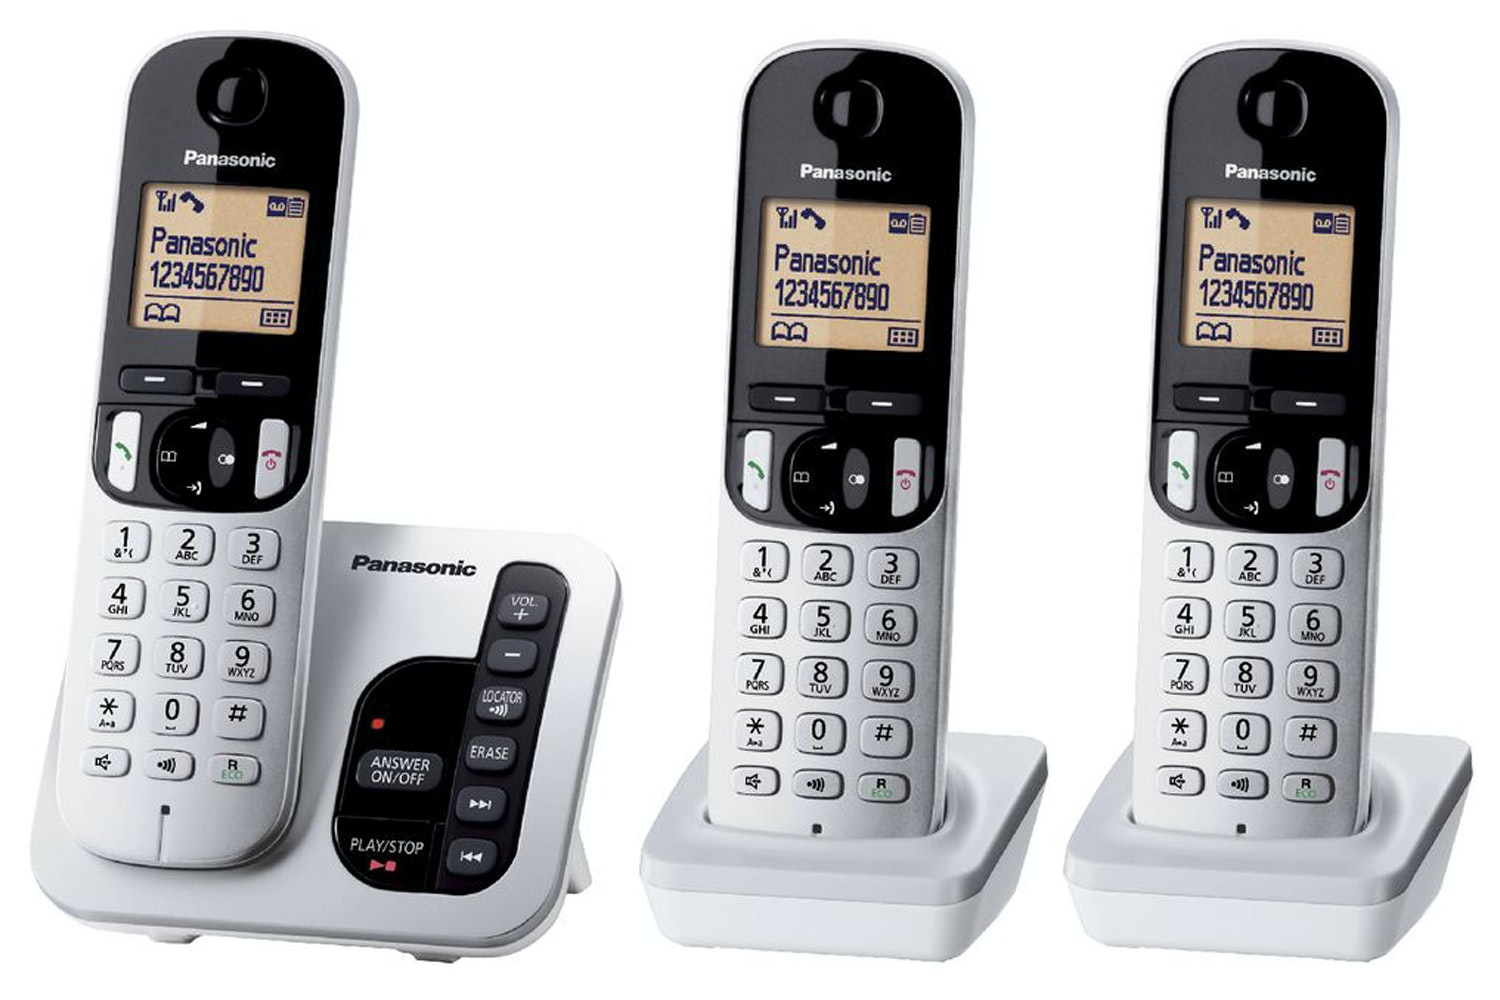 Panasonic Trio Cordless Phone with Answering Machine